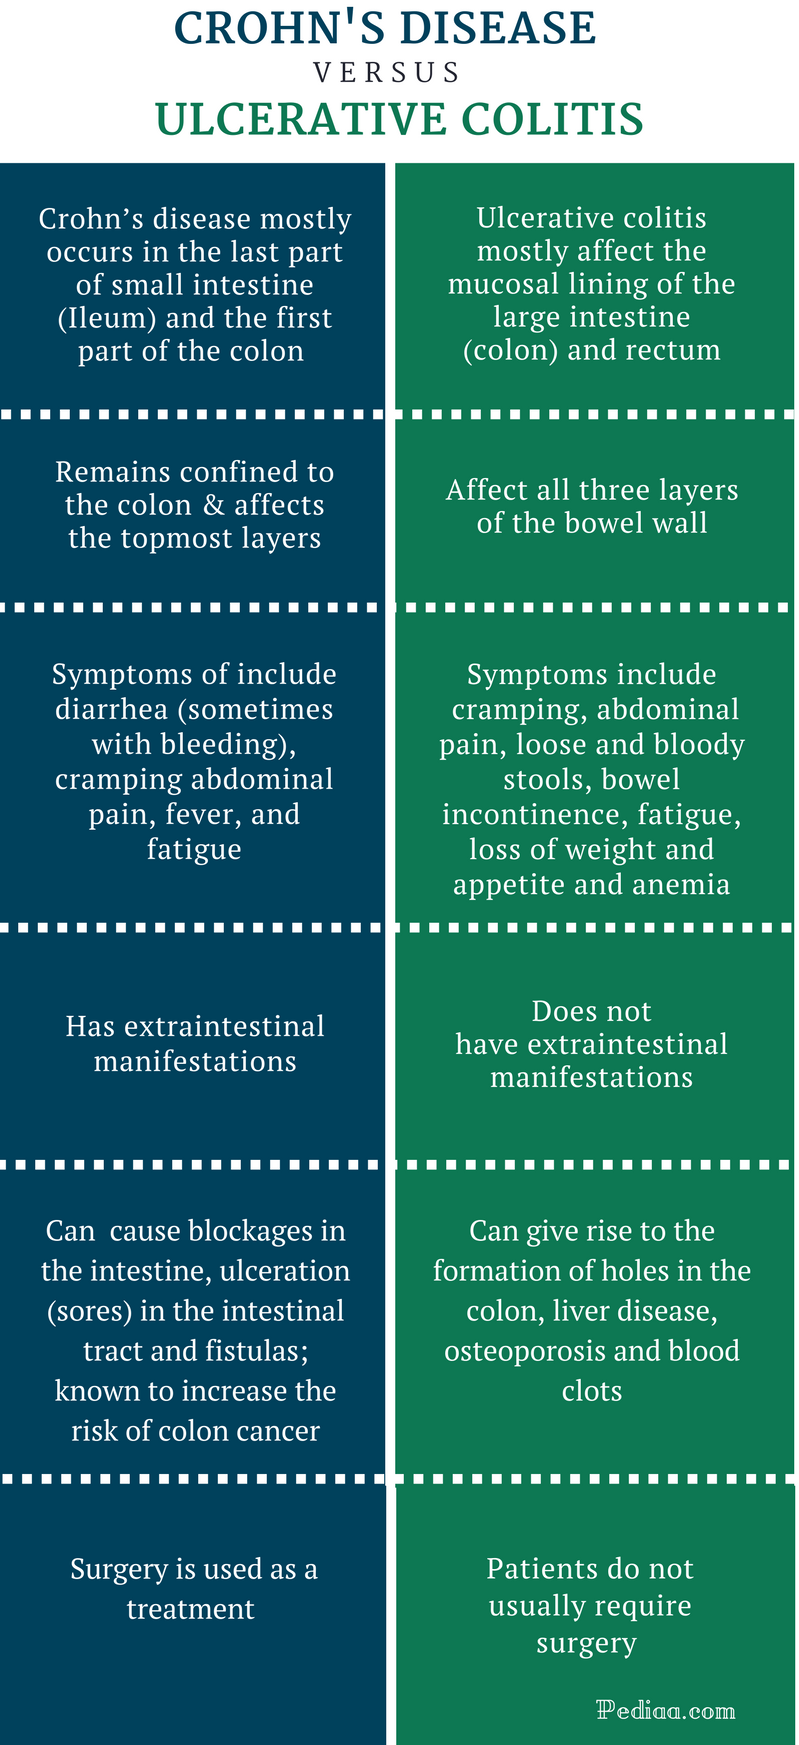 difference between crohn's disease and ulcerative colitis | causes